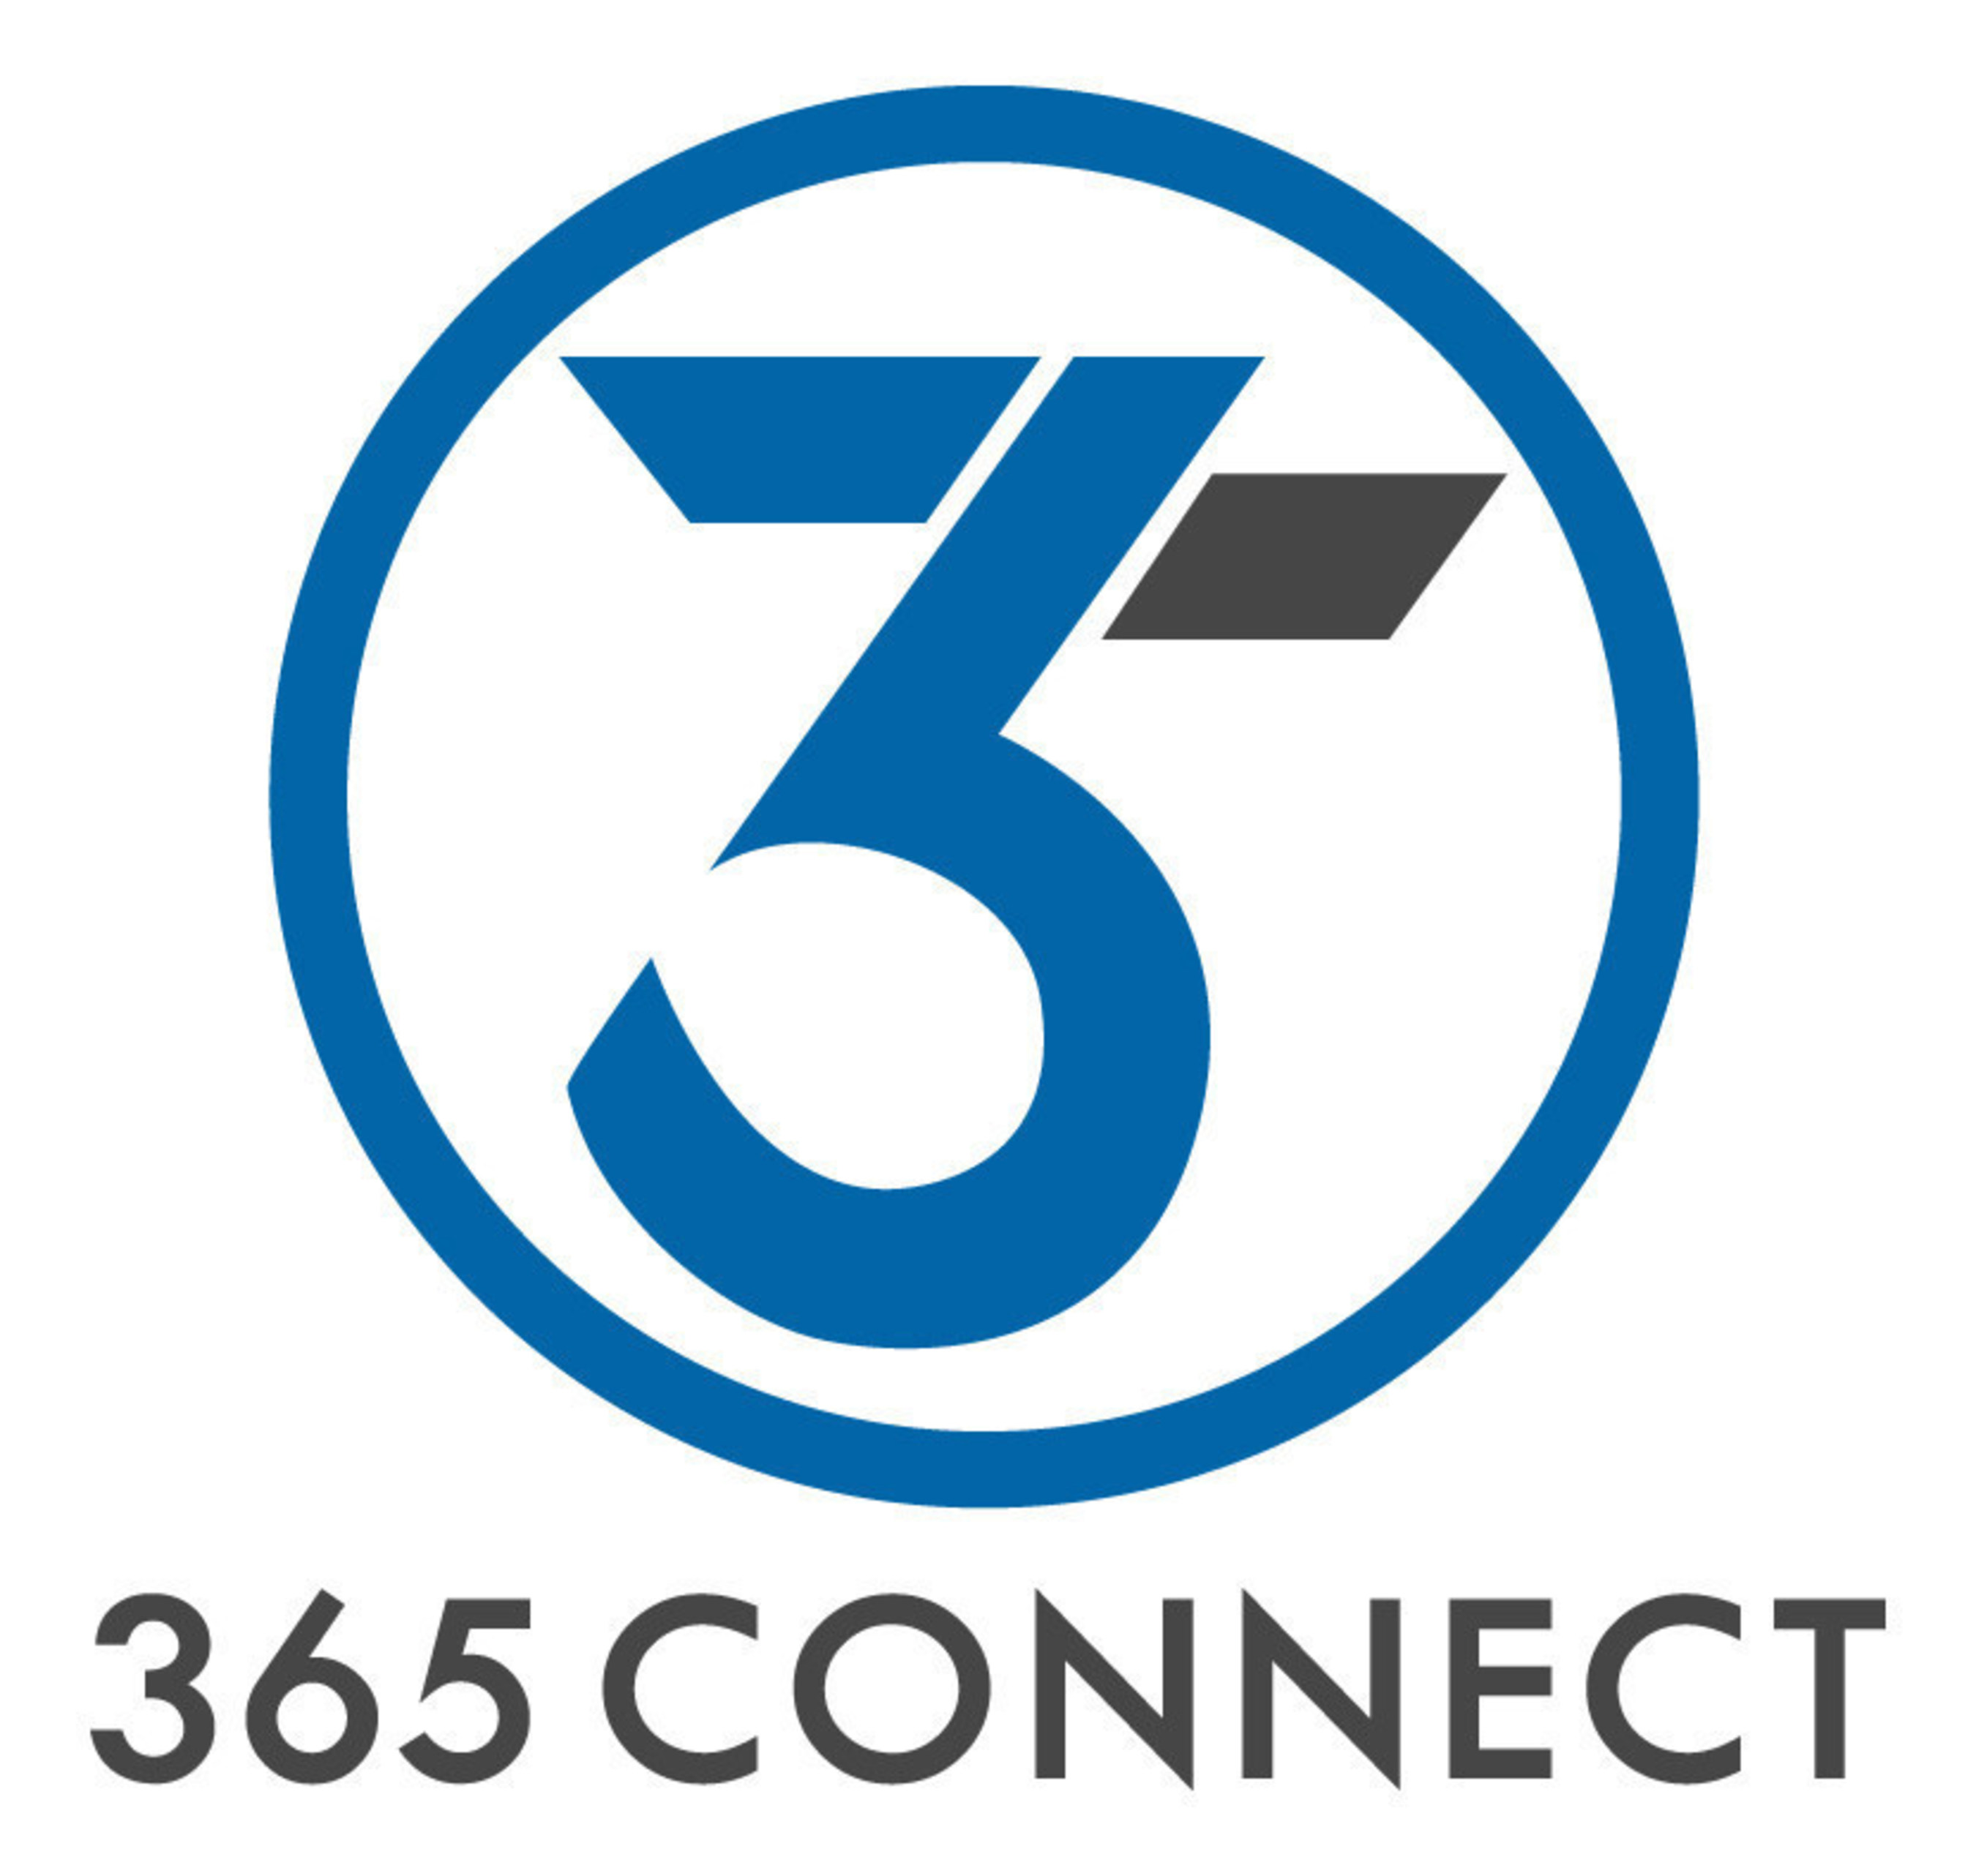 365 Connect to Support Police Data Initiative Project With Sponsorship of Summerware Event in New